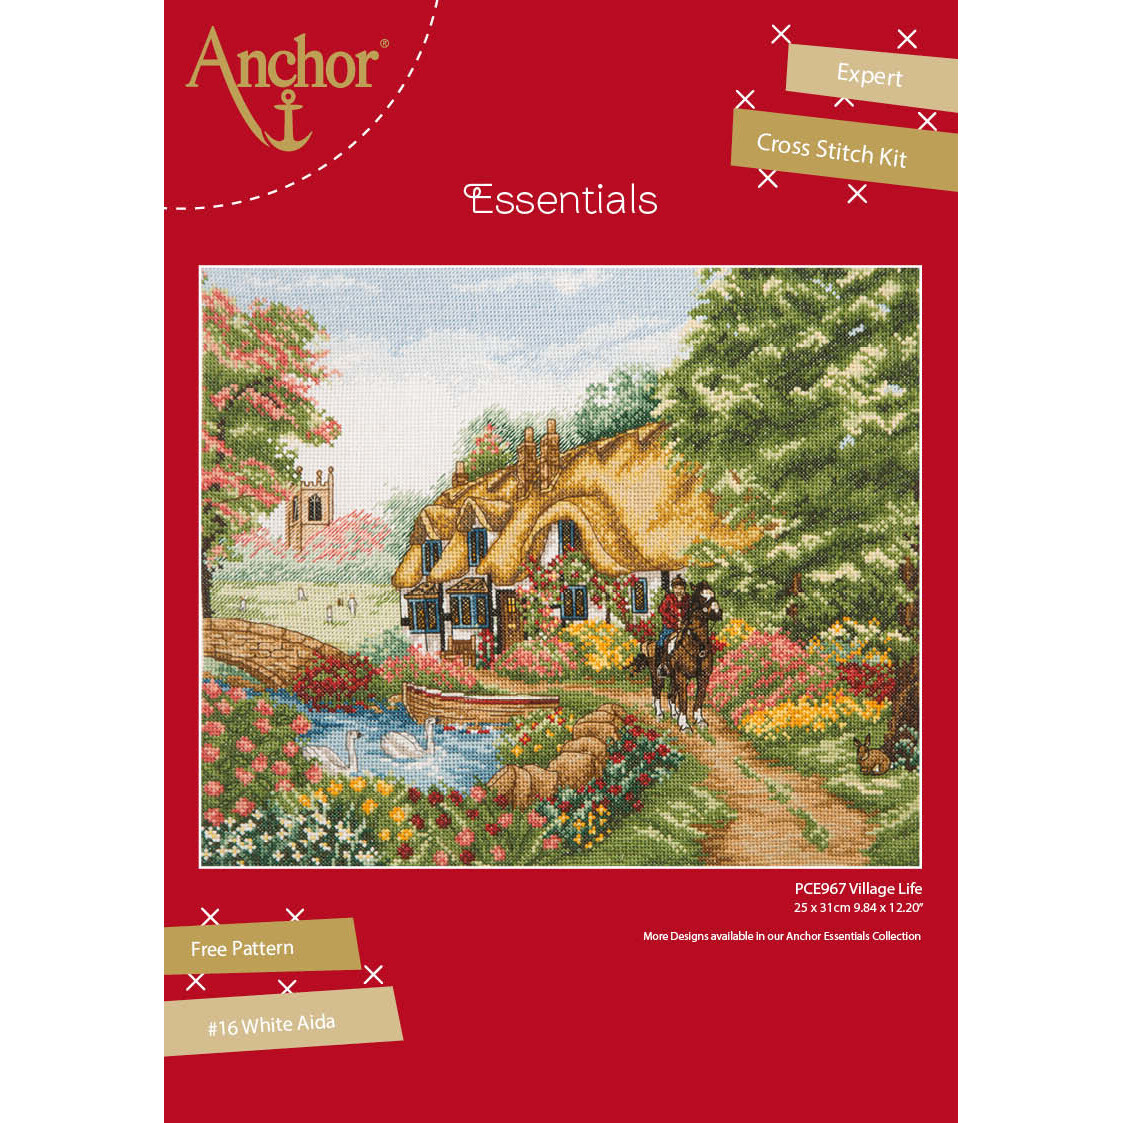 Anchor Essentials Cross Stitch Kit - Village Life